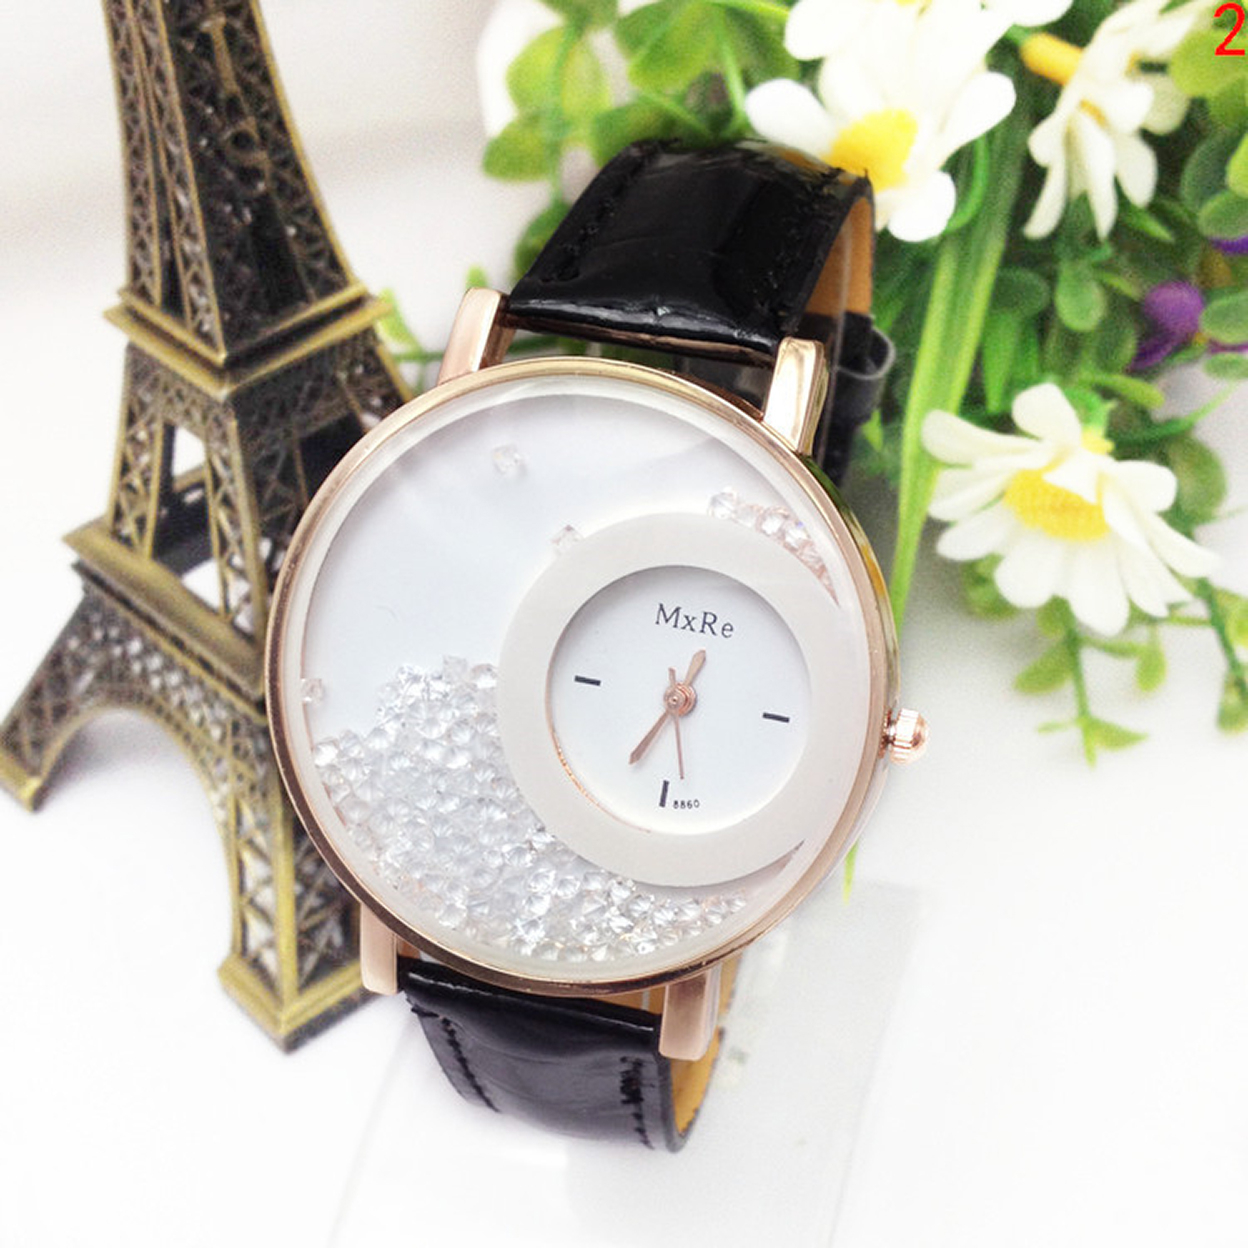 Trendy Fashion Watch With Moving Crystals Comes In 8 Different Colors 56a069f84e3d6fd56f8b4601